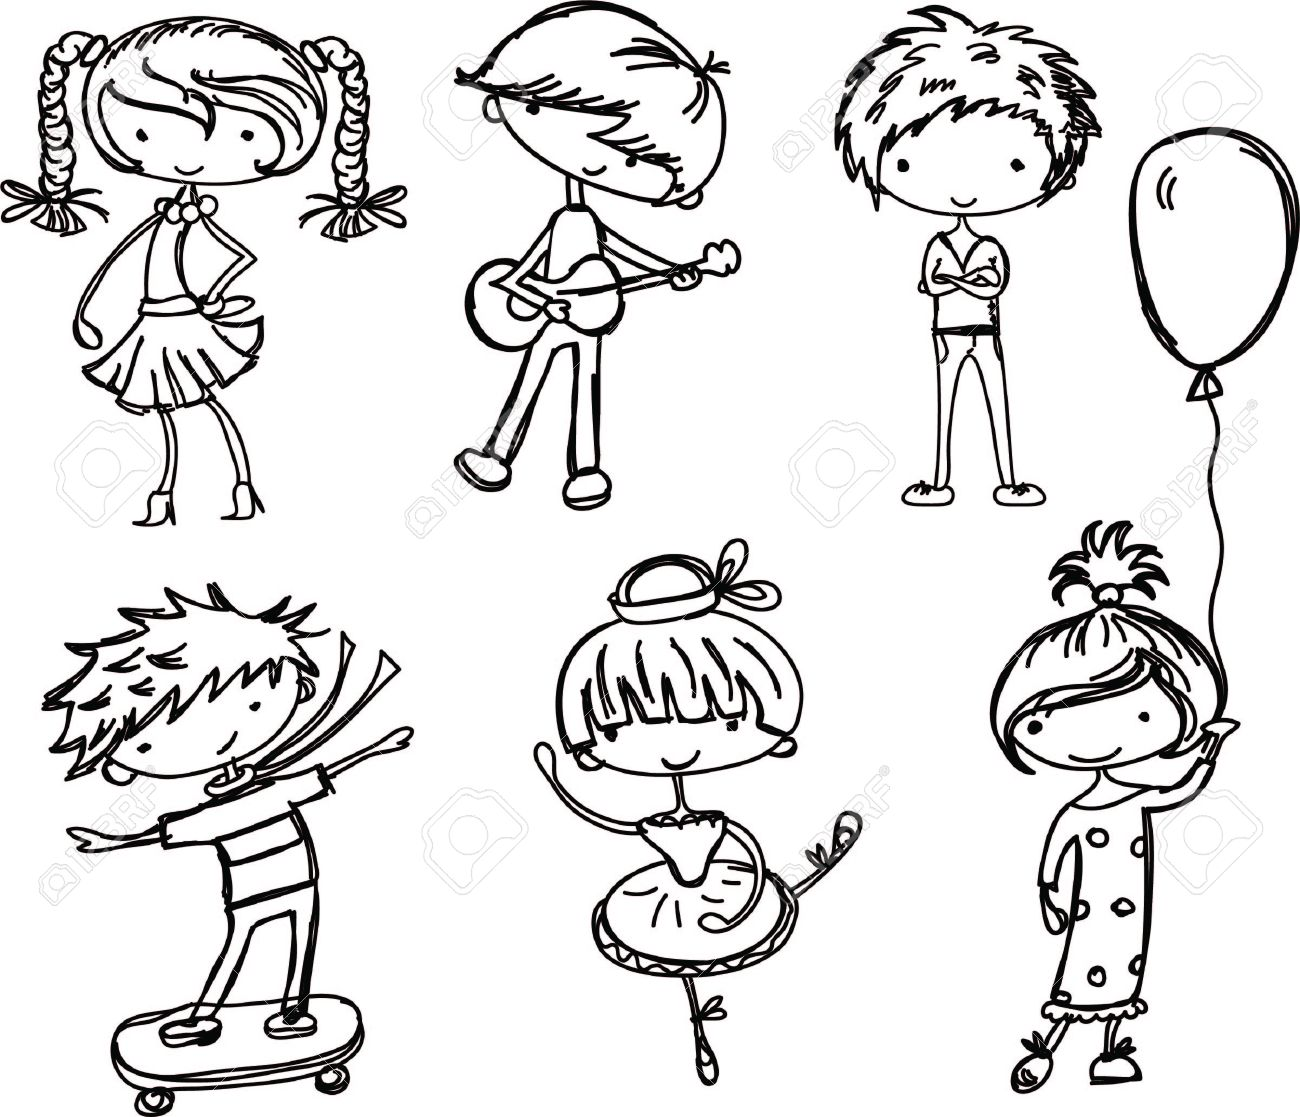 cartoon drawings of fashionable children stock vector 15682152 - Cartoon Drawings Of Children